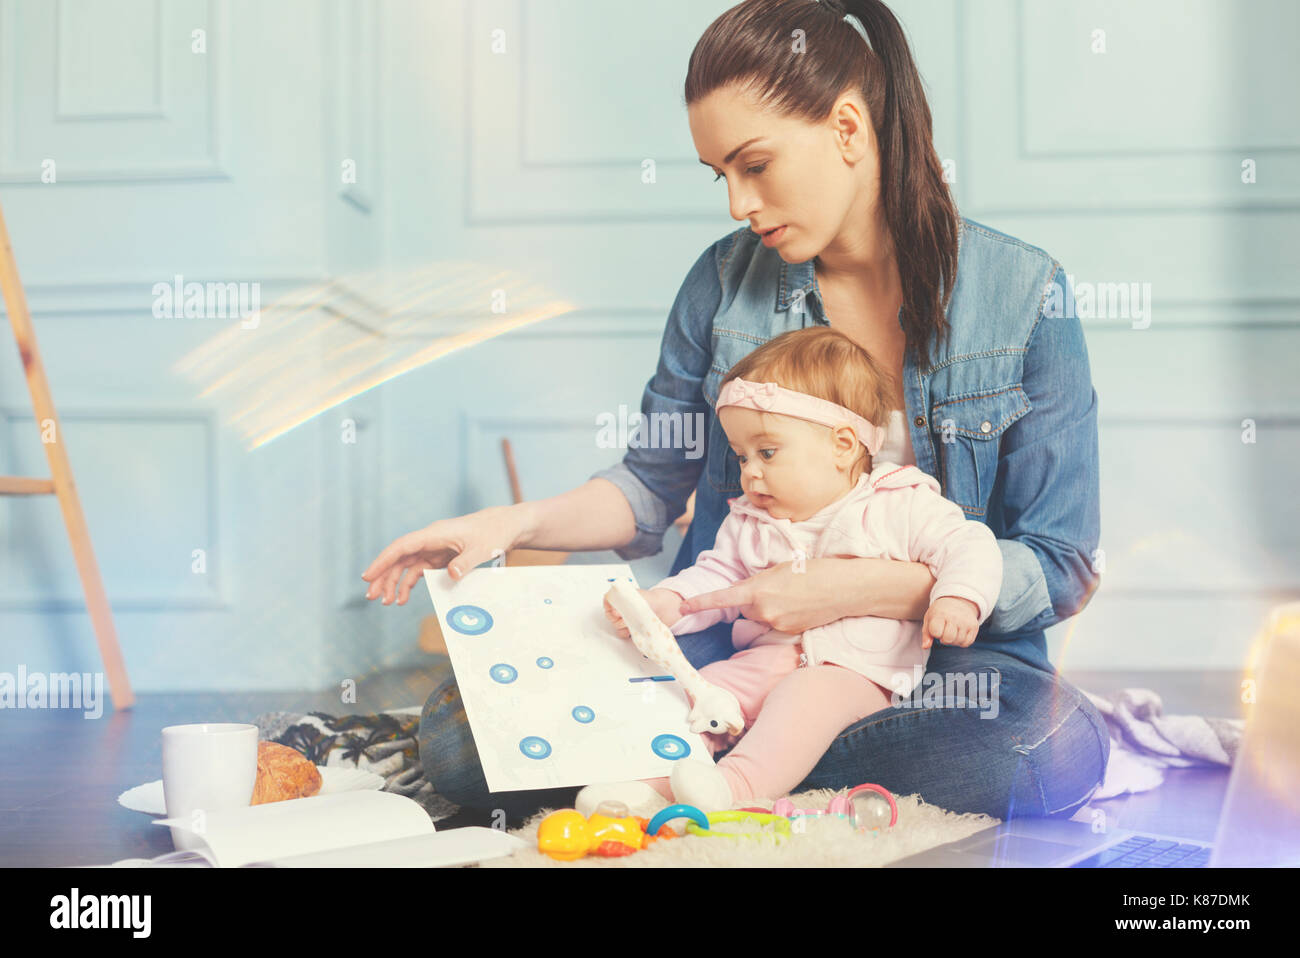 Very attentive woman looking at documents - Stock Image